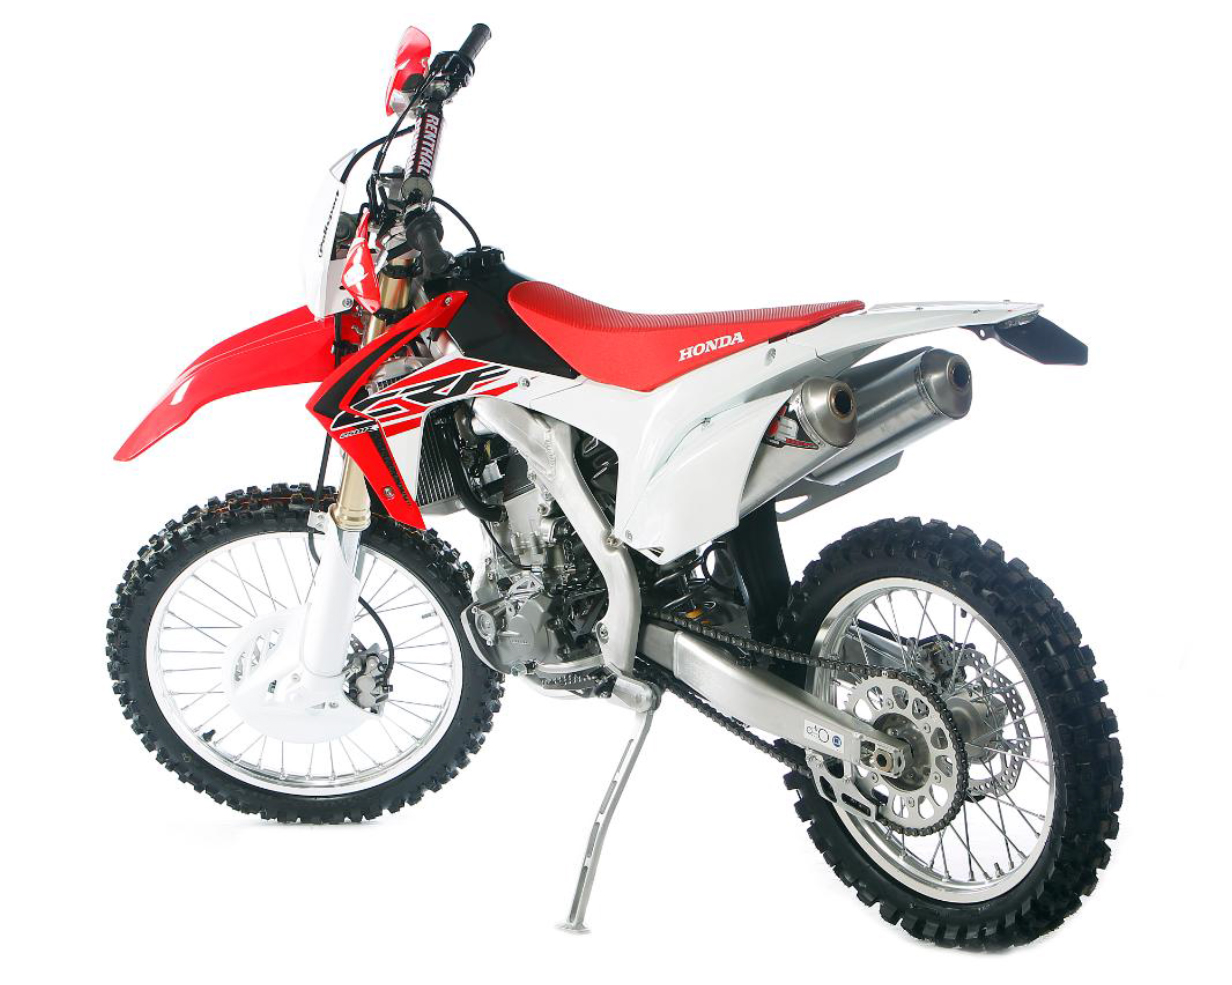 Road Legal Crf250r Now Available At Colwyn Bay Honda